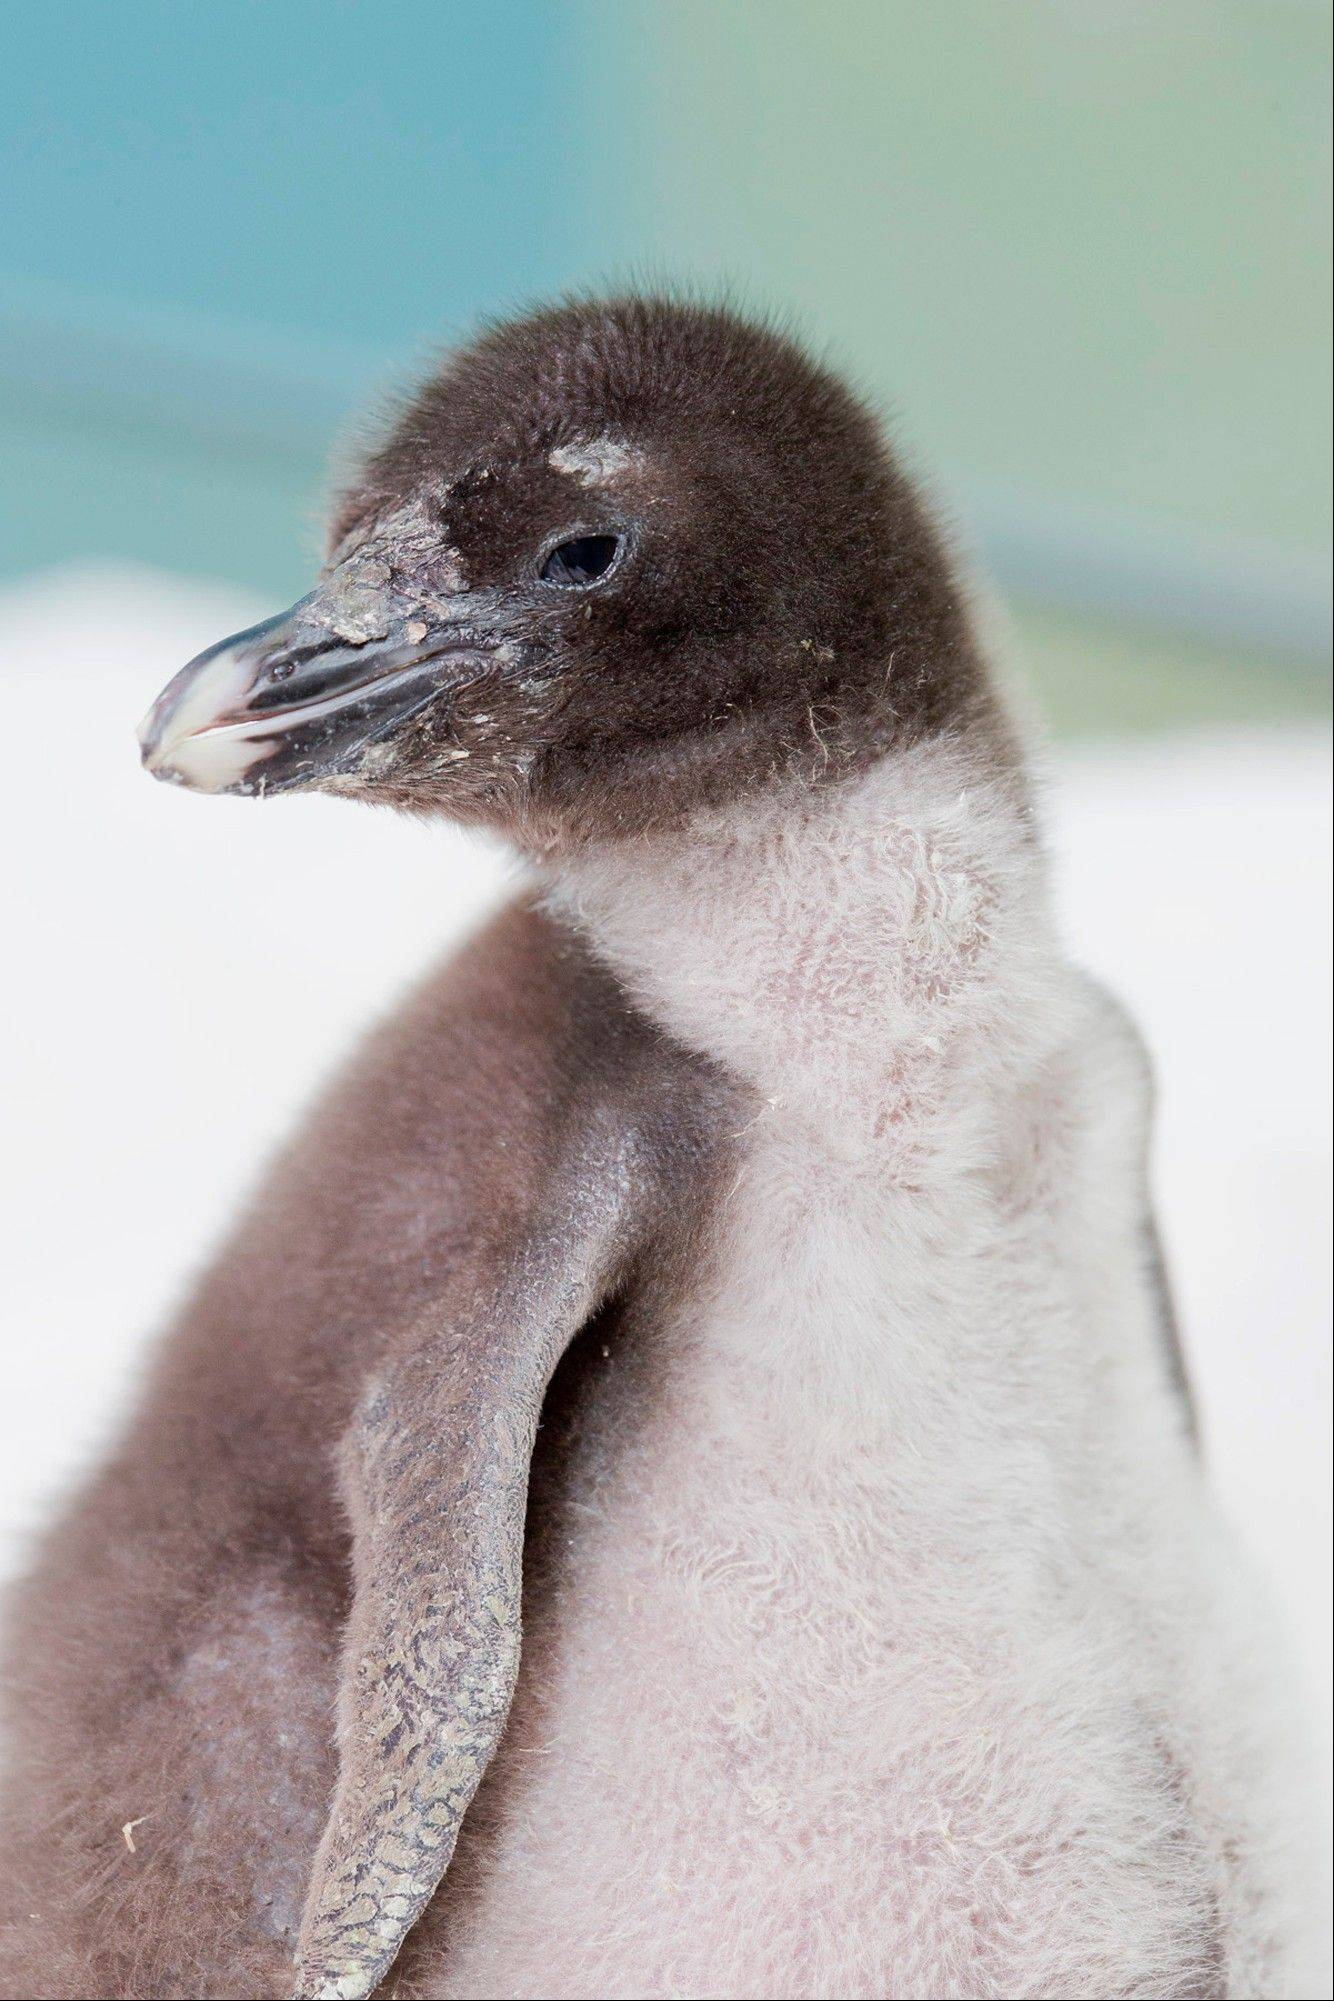 This June 18, 2013, photo provided by the Shedd Aquarium in Chicago shows a rockhopper penguin chick that was hatched at the aquarium on June 12, 2013. The baby bird is nesting with its parents at the aquarium. Shedd experts say the chick weighed 75 grams when it was born and is gaining about 40 grams every day. The chick's gender hasn't been determined yet. Shedd Aquarium is involved in several penguin rescue efforts.